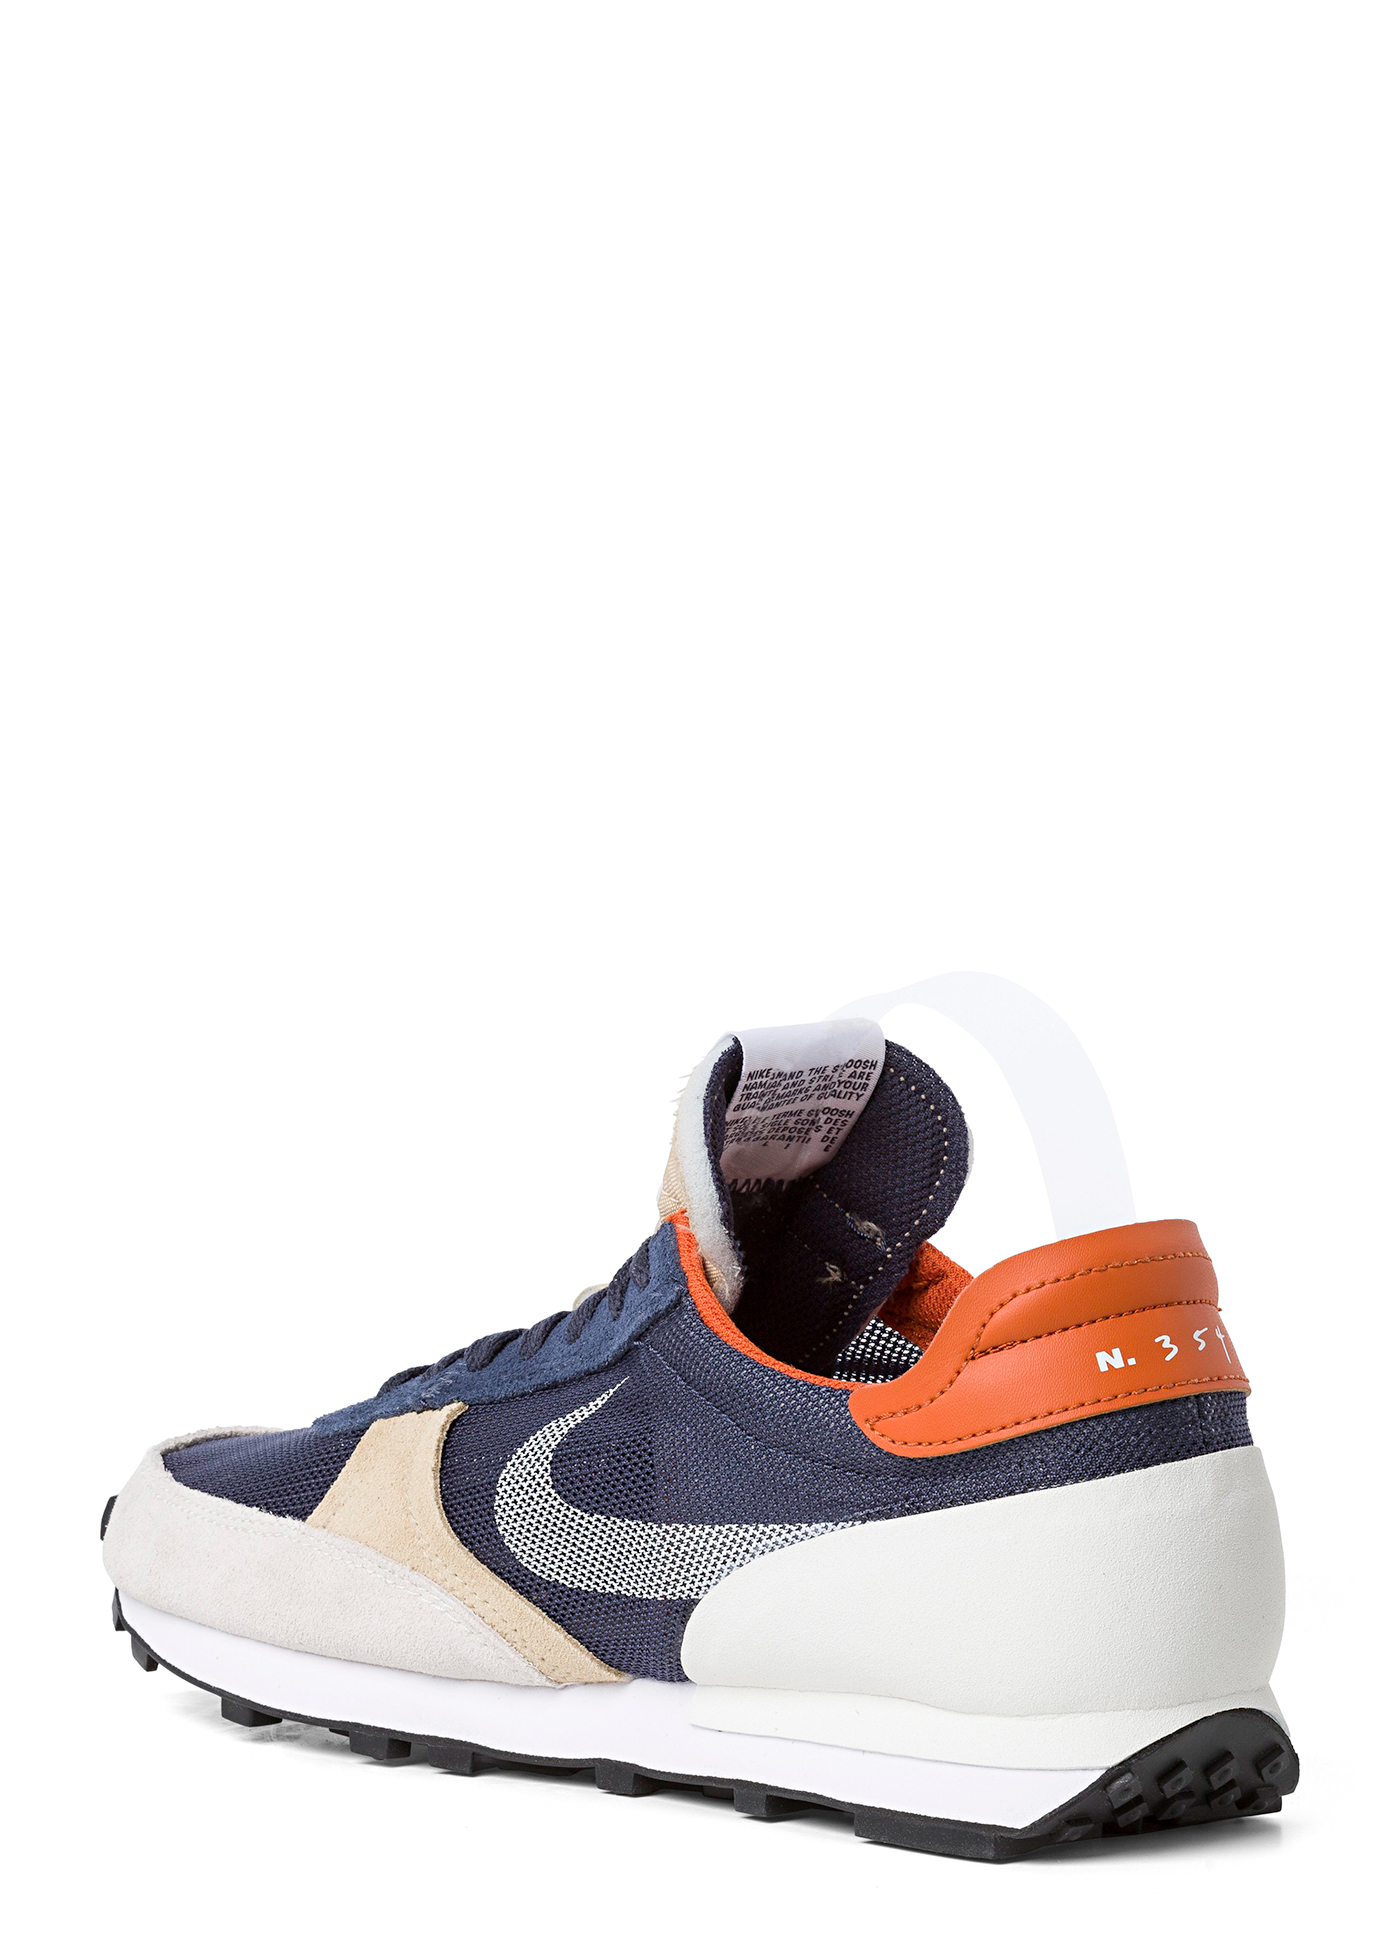 Nike 70's Type image number 2